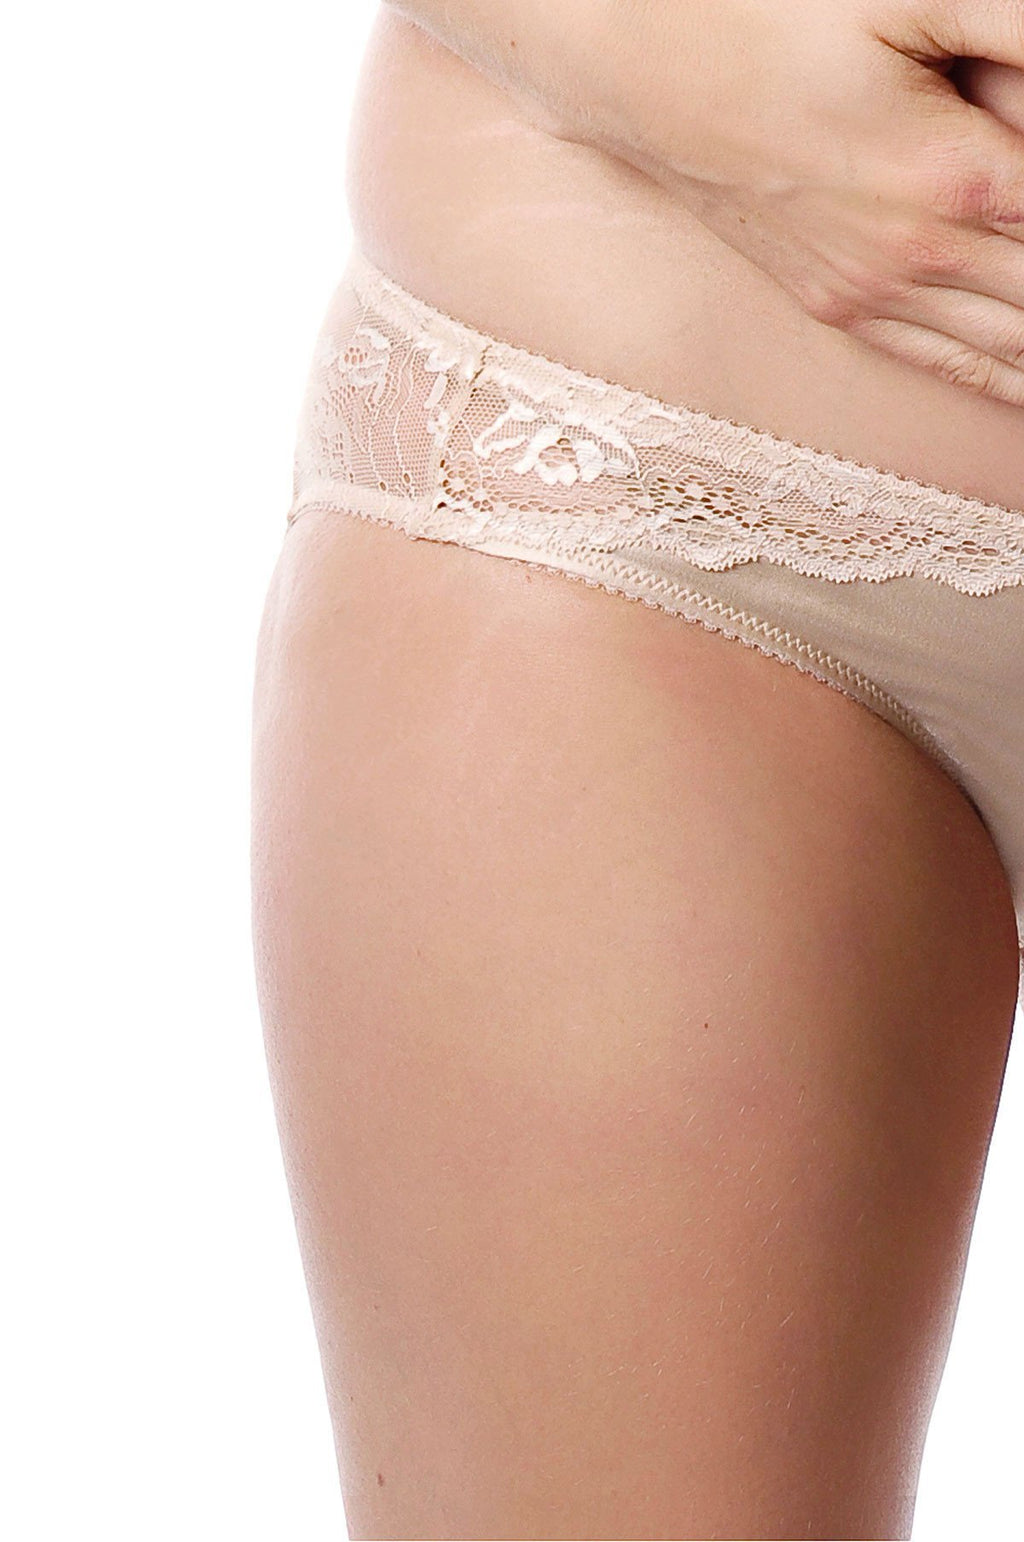 Hotmilk Lingerie Eclipse nude brief